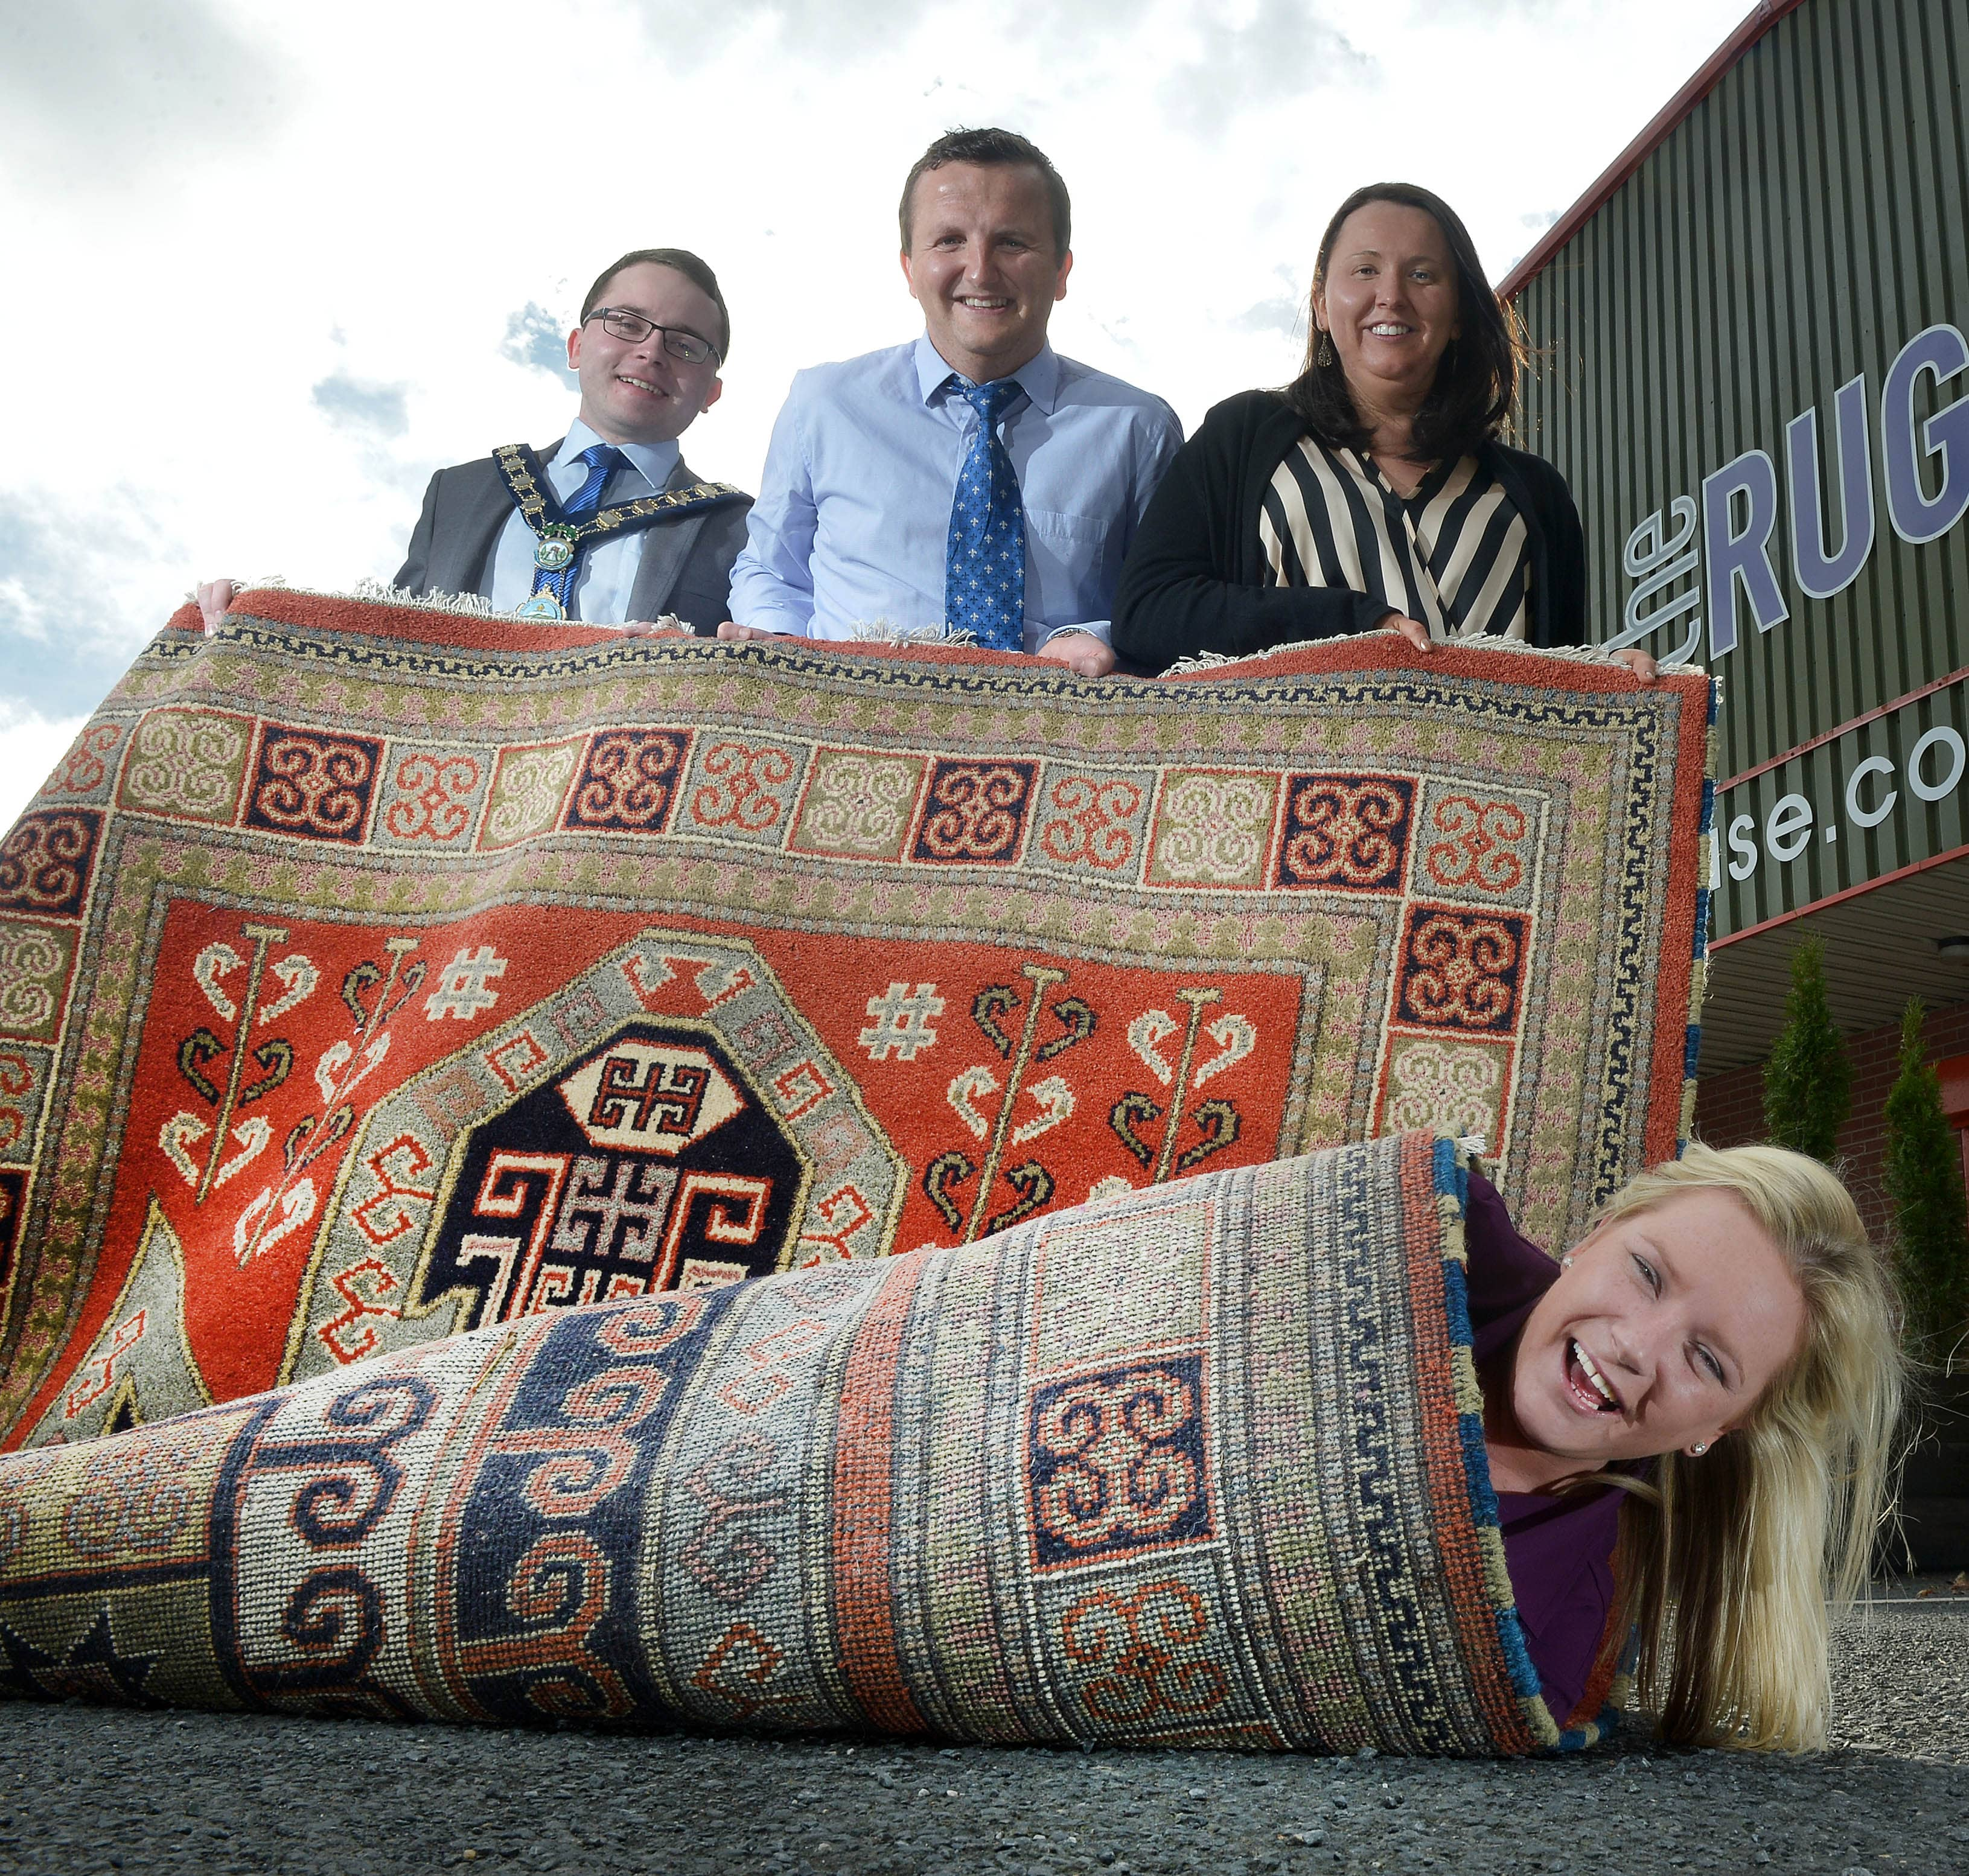 Left to right - Newry & Mourne Mayor Daire Hughes Owner's Paul Vallely & Clare Vallely Rug = Roisin Molloy (The Rug House)